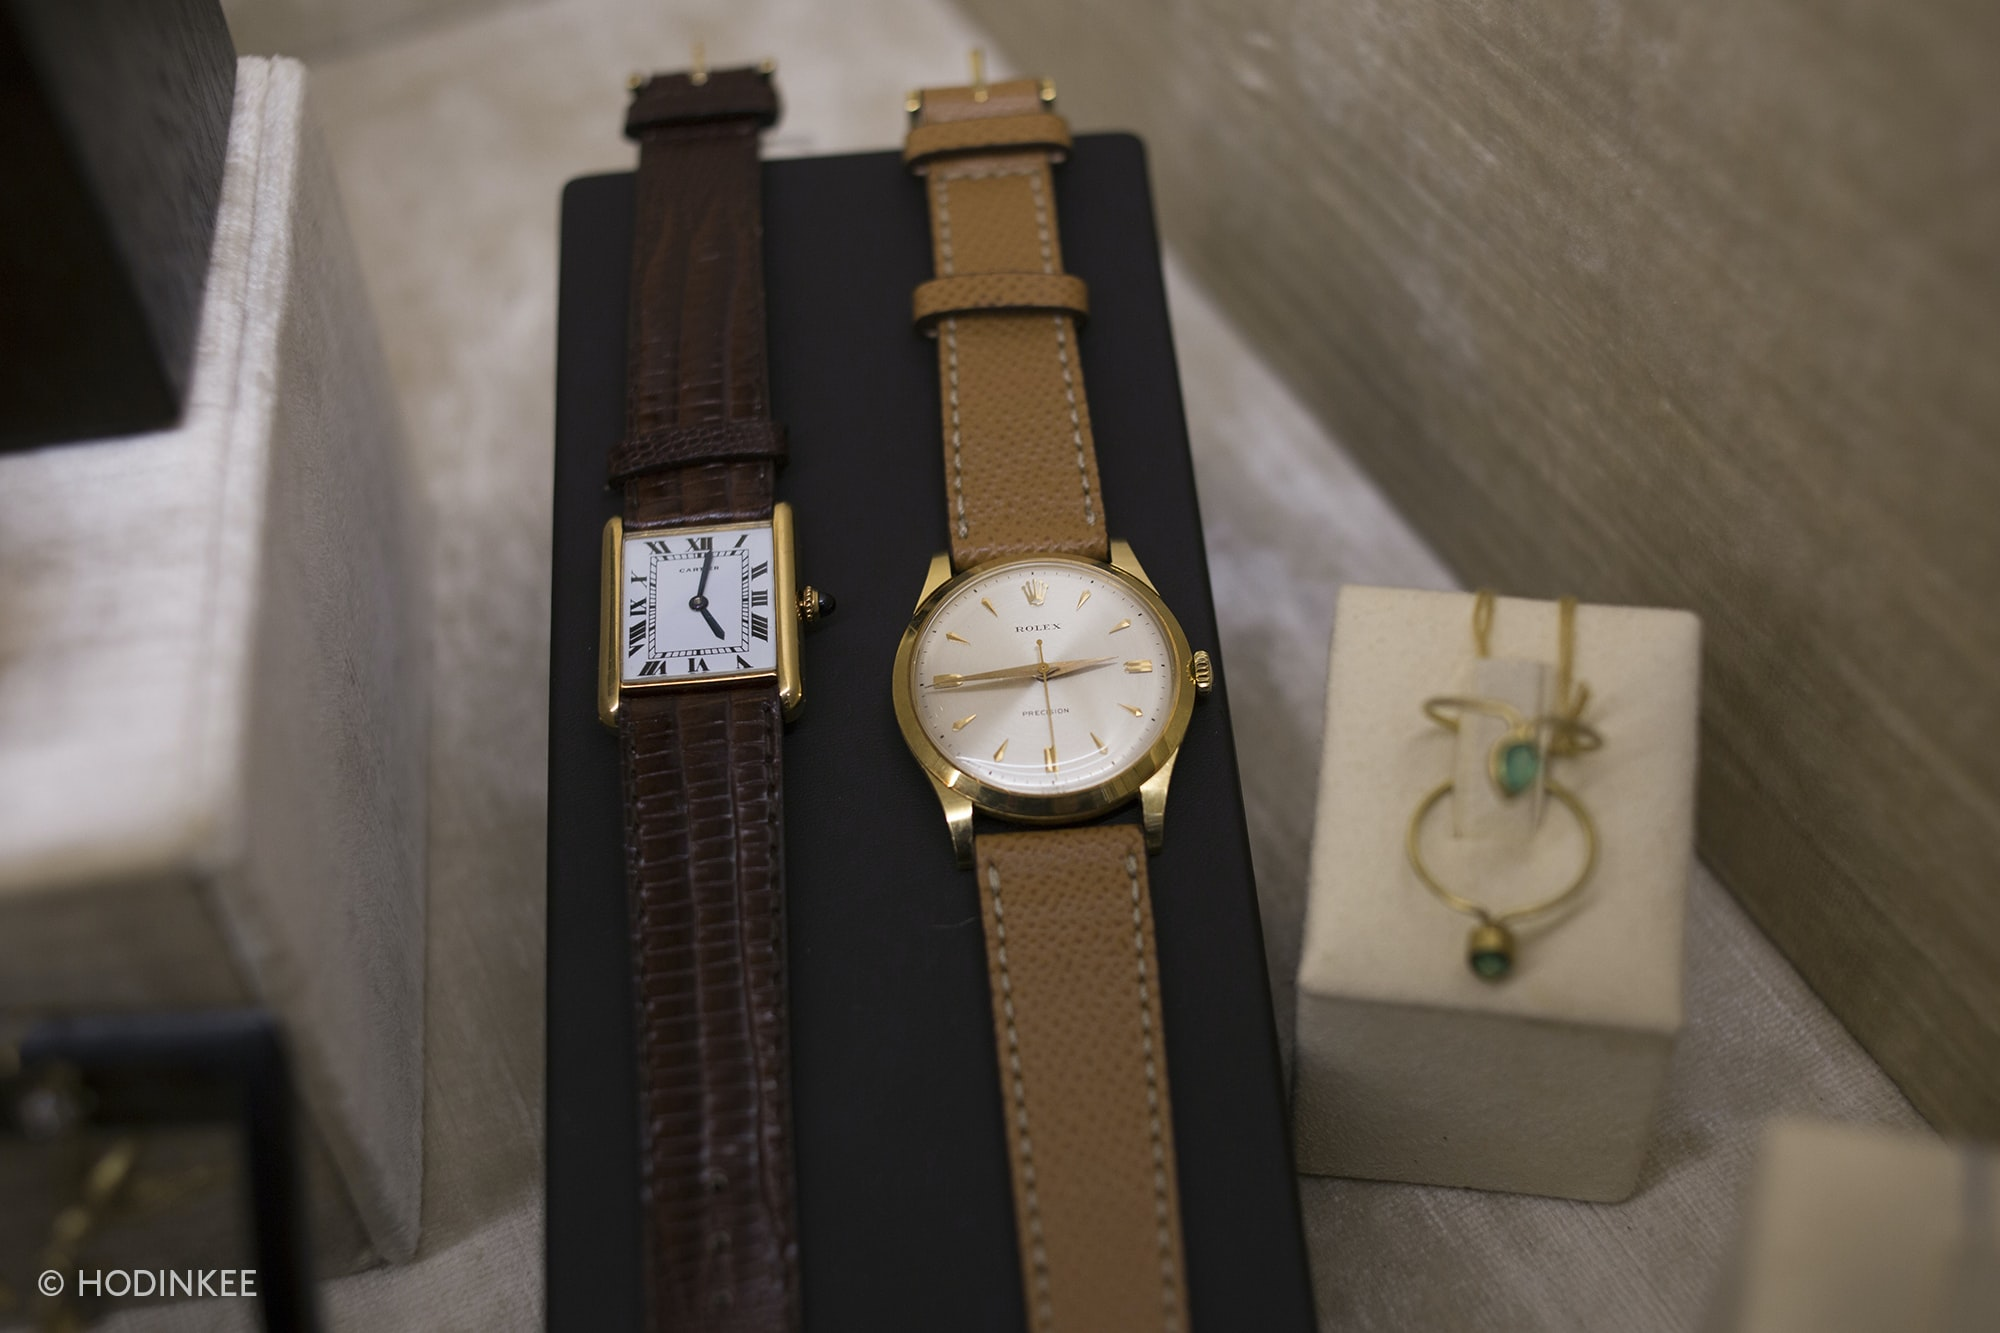 Photo Report: The HODINKEE Ladies' Collection At Material Good Photo Report: The HODINKEE Ladies' Collection At Material Good 20015206 copy